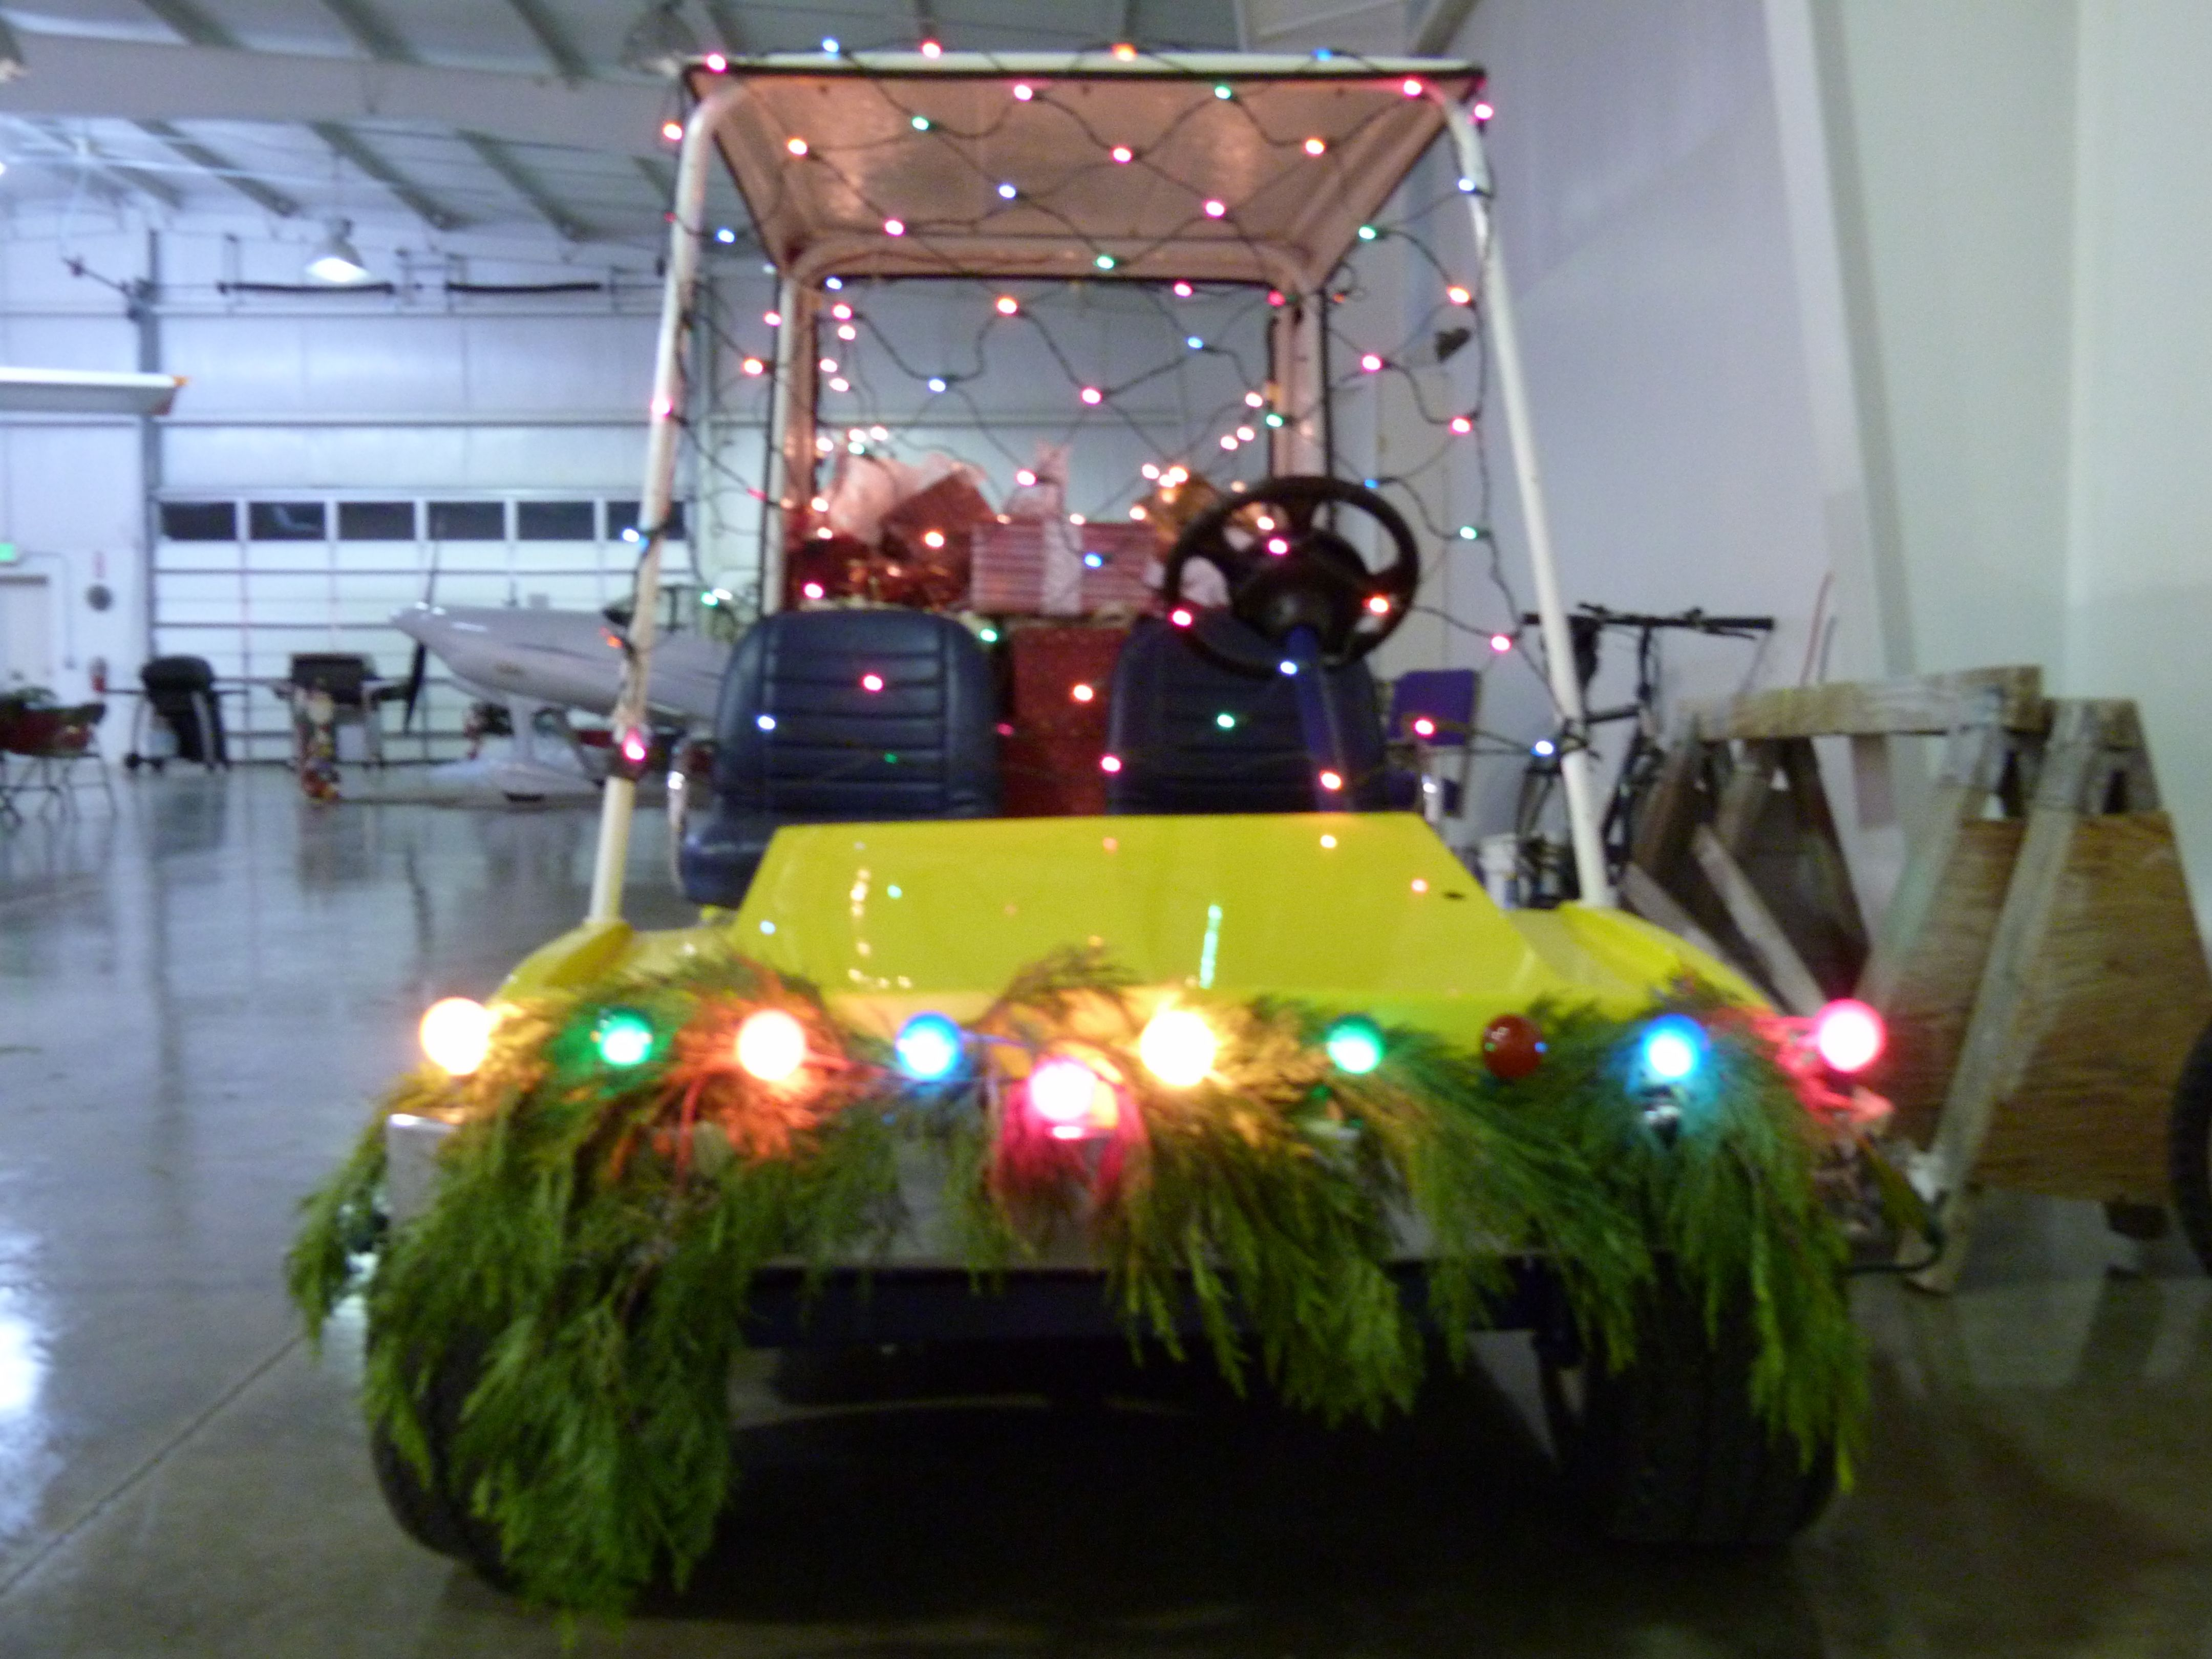 Decorating what you have ) a golf cart turned into the